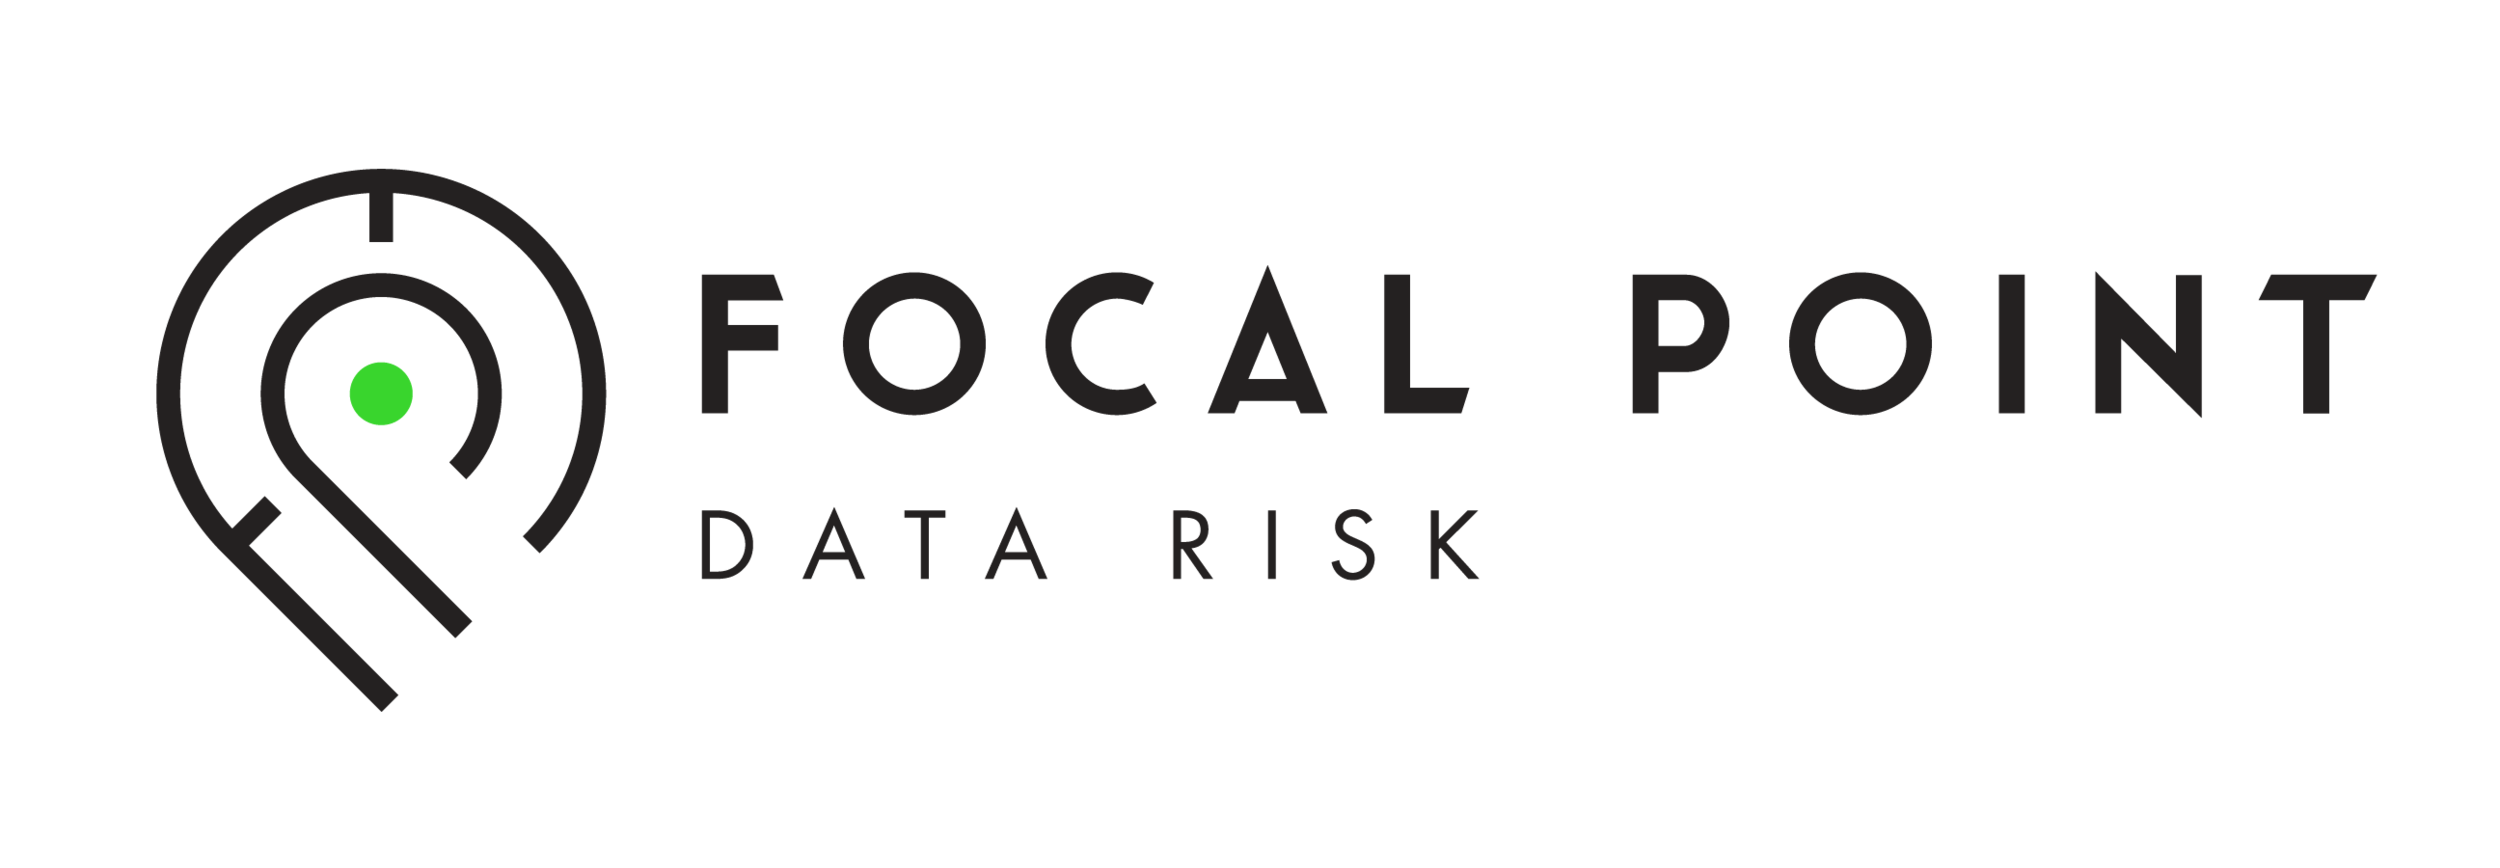 focal_point_logo.png